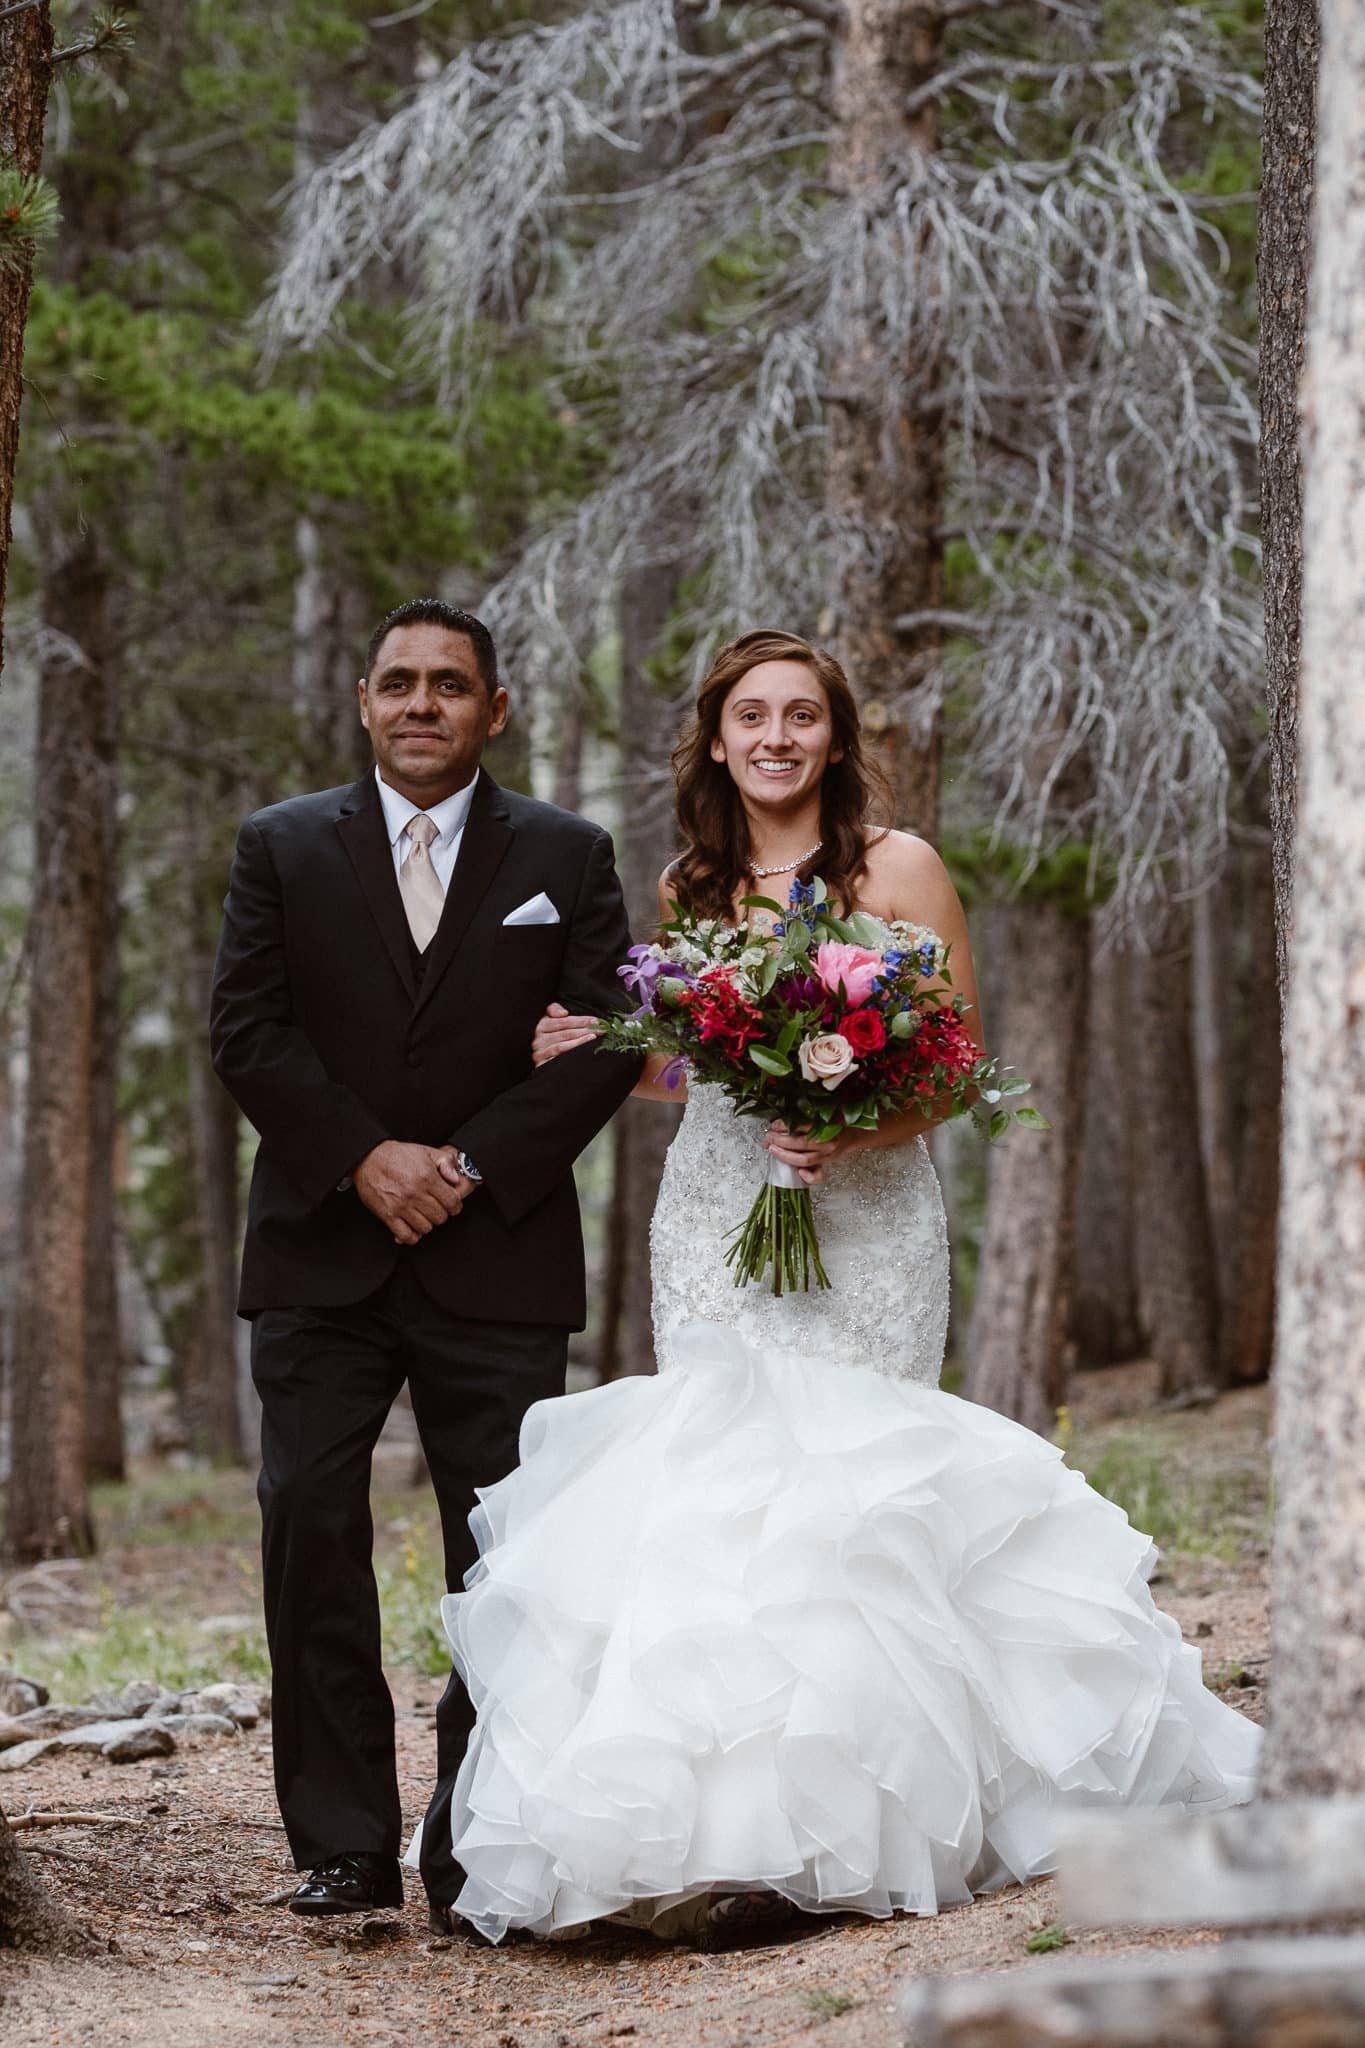 Dao House wedding photographer, Estes Park wedding venue, Colorado mountain wedding, bride and father walking down the aisle, outdoor ceremony, wedding in the woods,